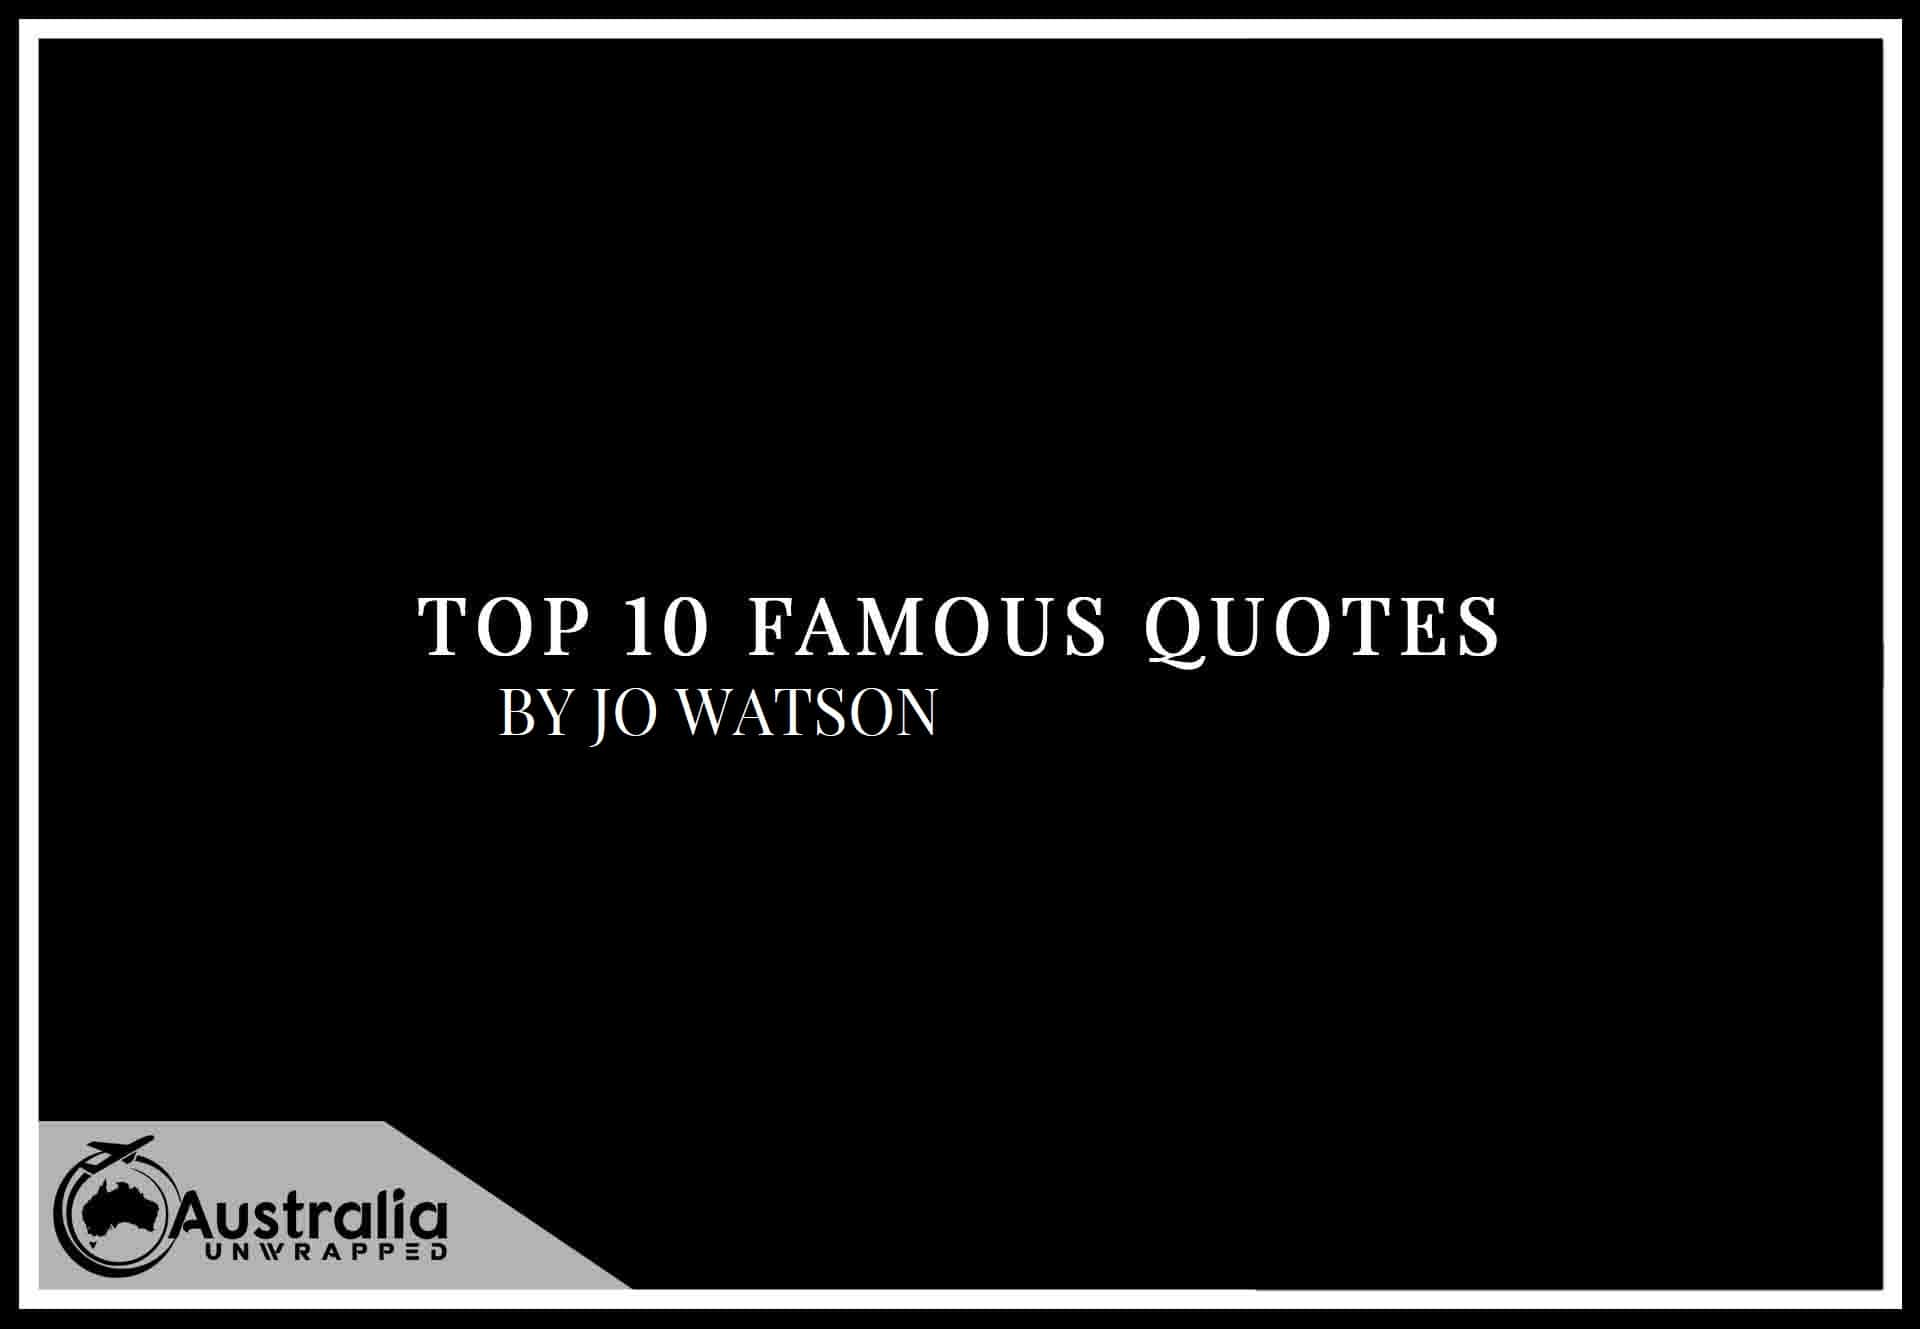 Top 10 Famous Quotes by Author Jo Watson